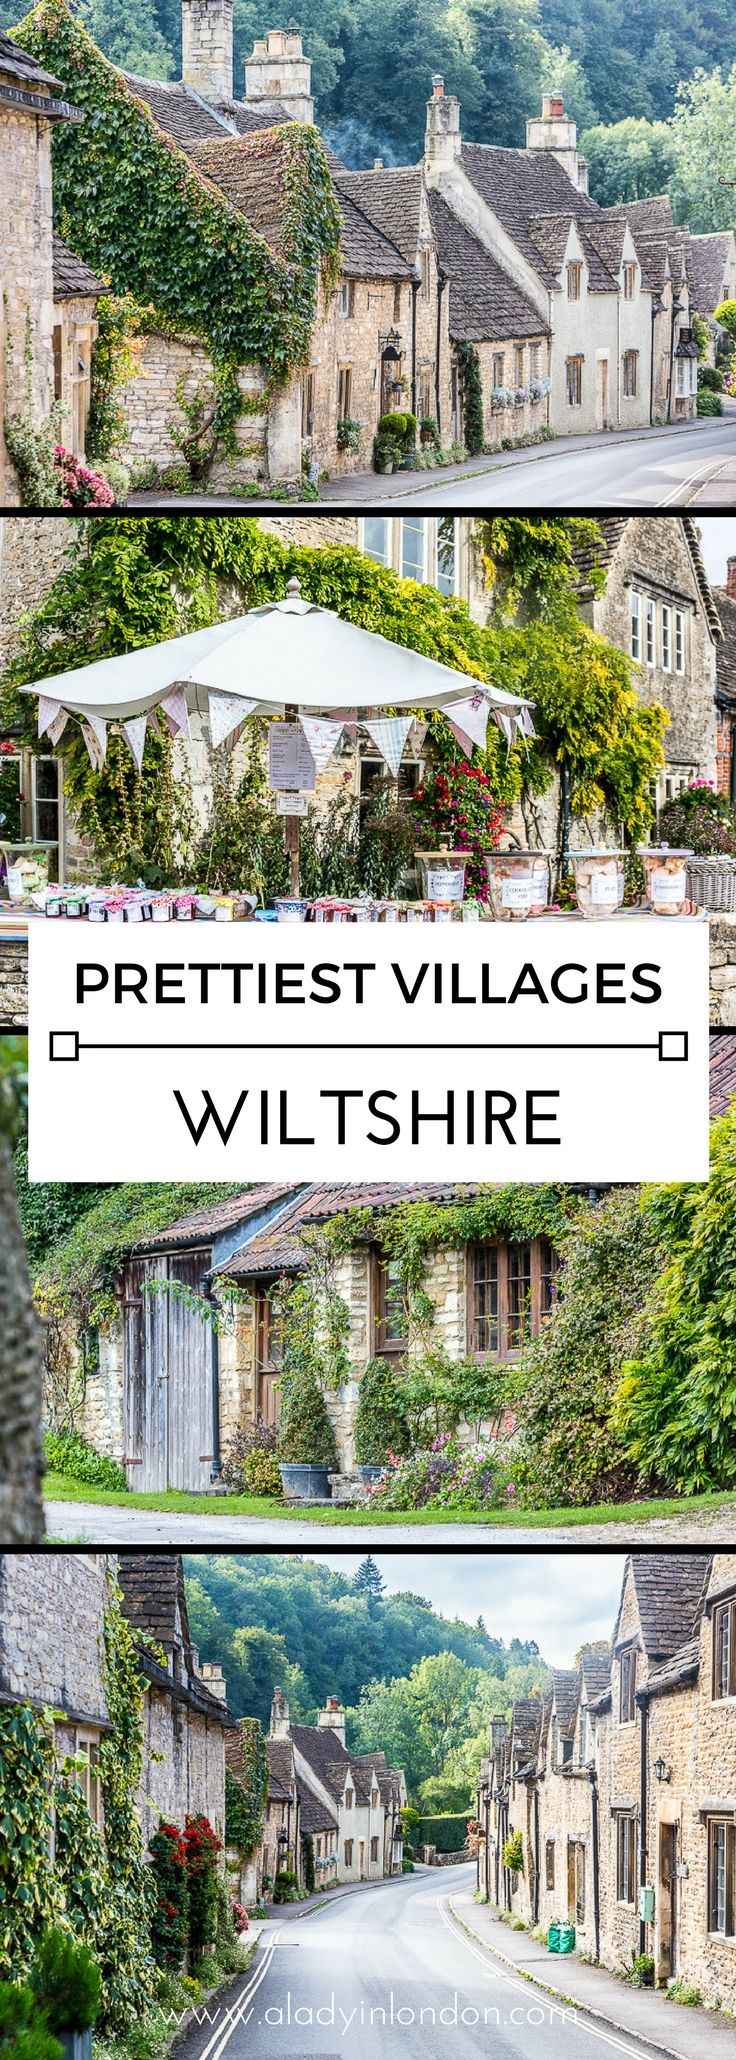 The 3 prettiest villages in Wiltshire, including Castle Combe, Lacock, and Avebury